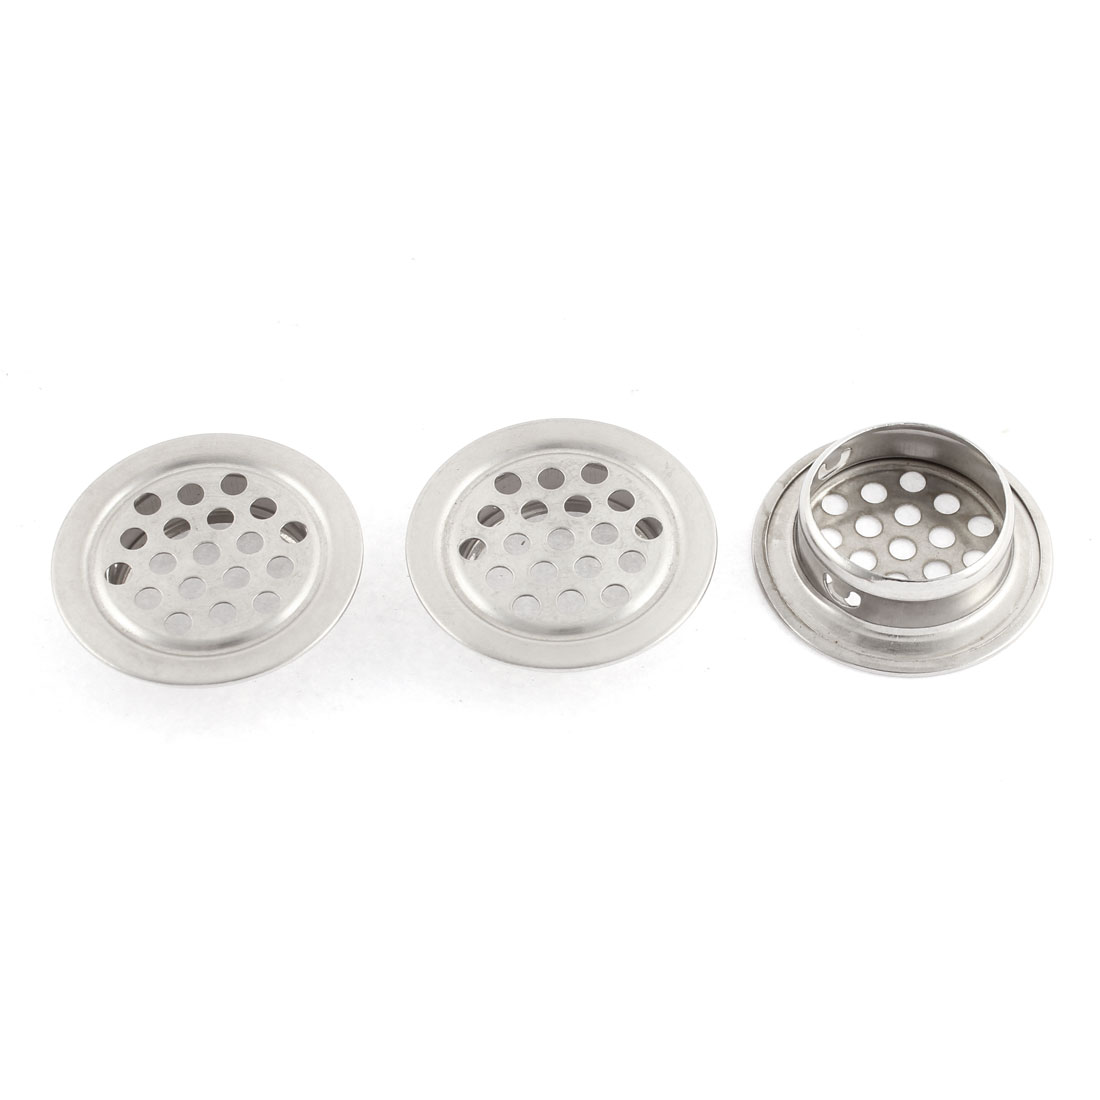 3Pcs 35 x 24mm Round Stainless Steel Perforated Mesh Air Vents Louvers